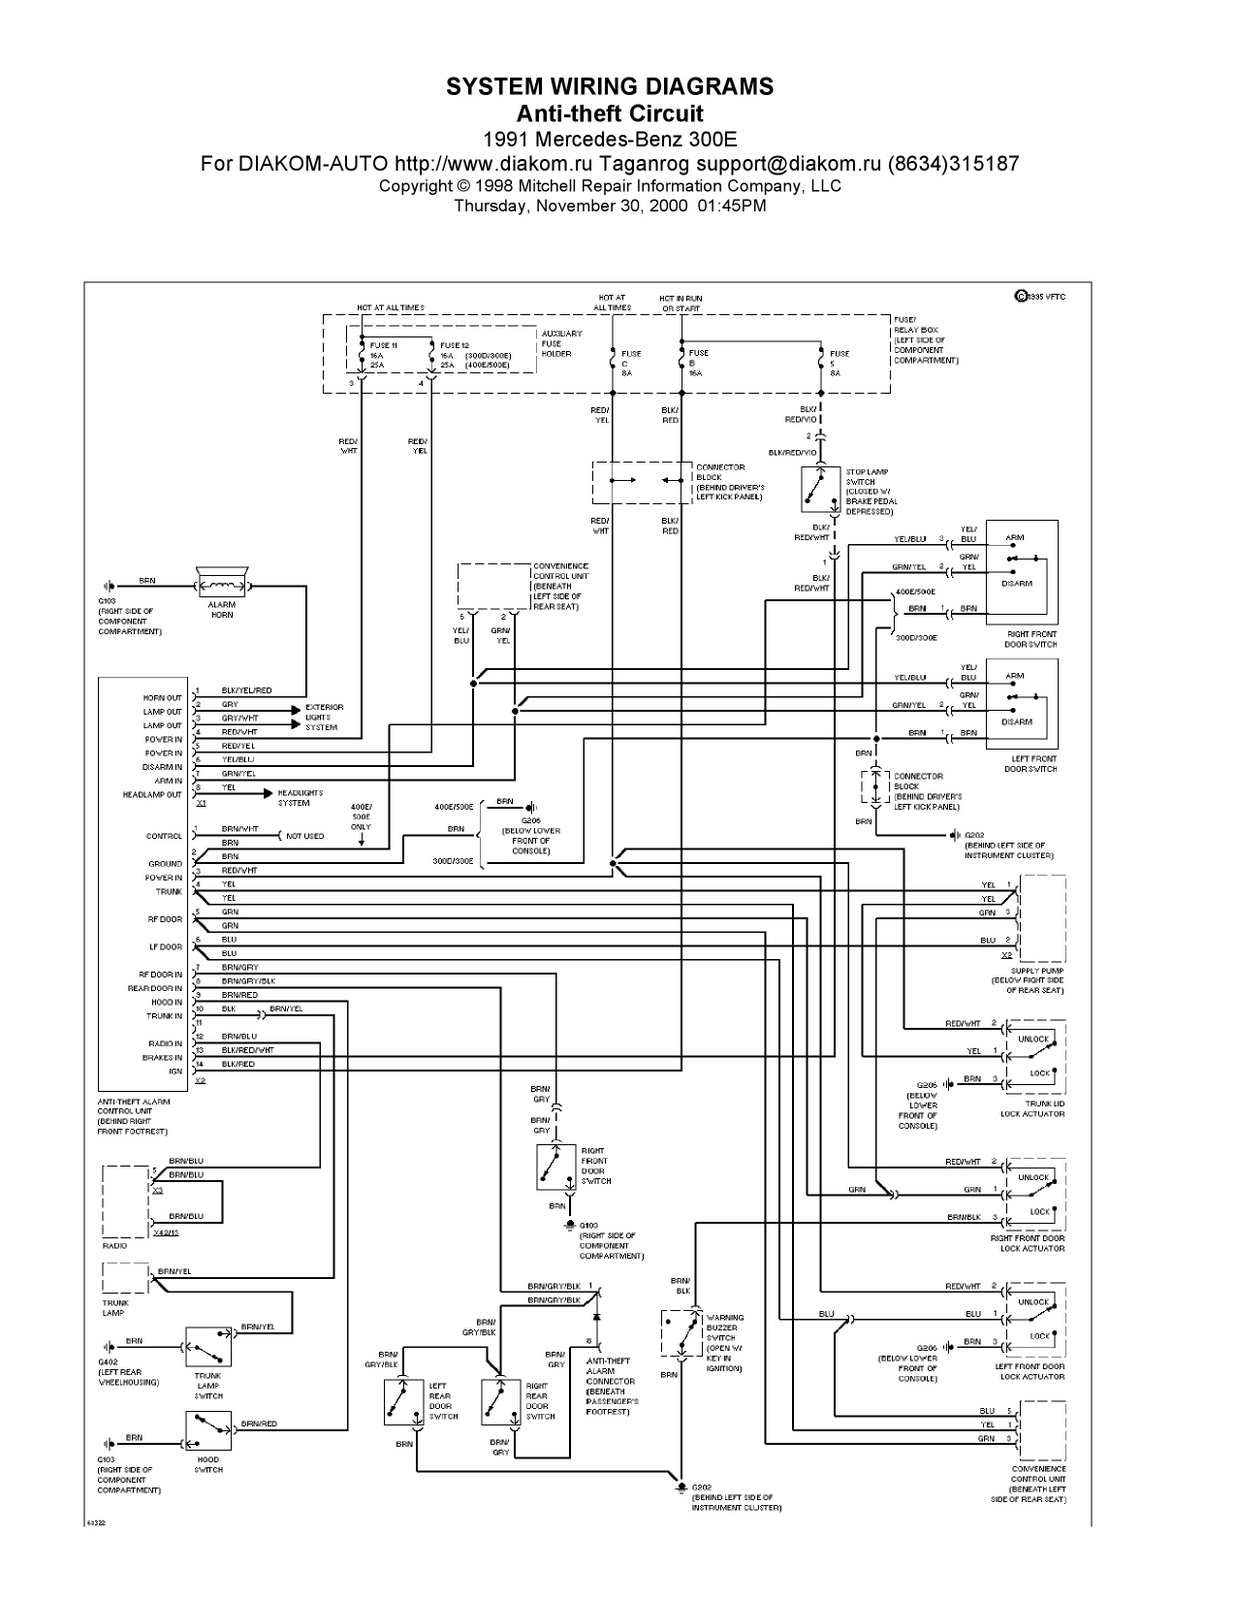 mercedes 300e wiring diagram wiring diagram portal mercedes m119 engine diagrams 1993 mercedes 300e wiring diagram [ 1236 x 1600 Pixel ]